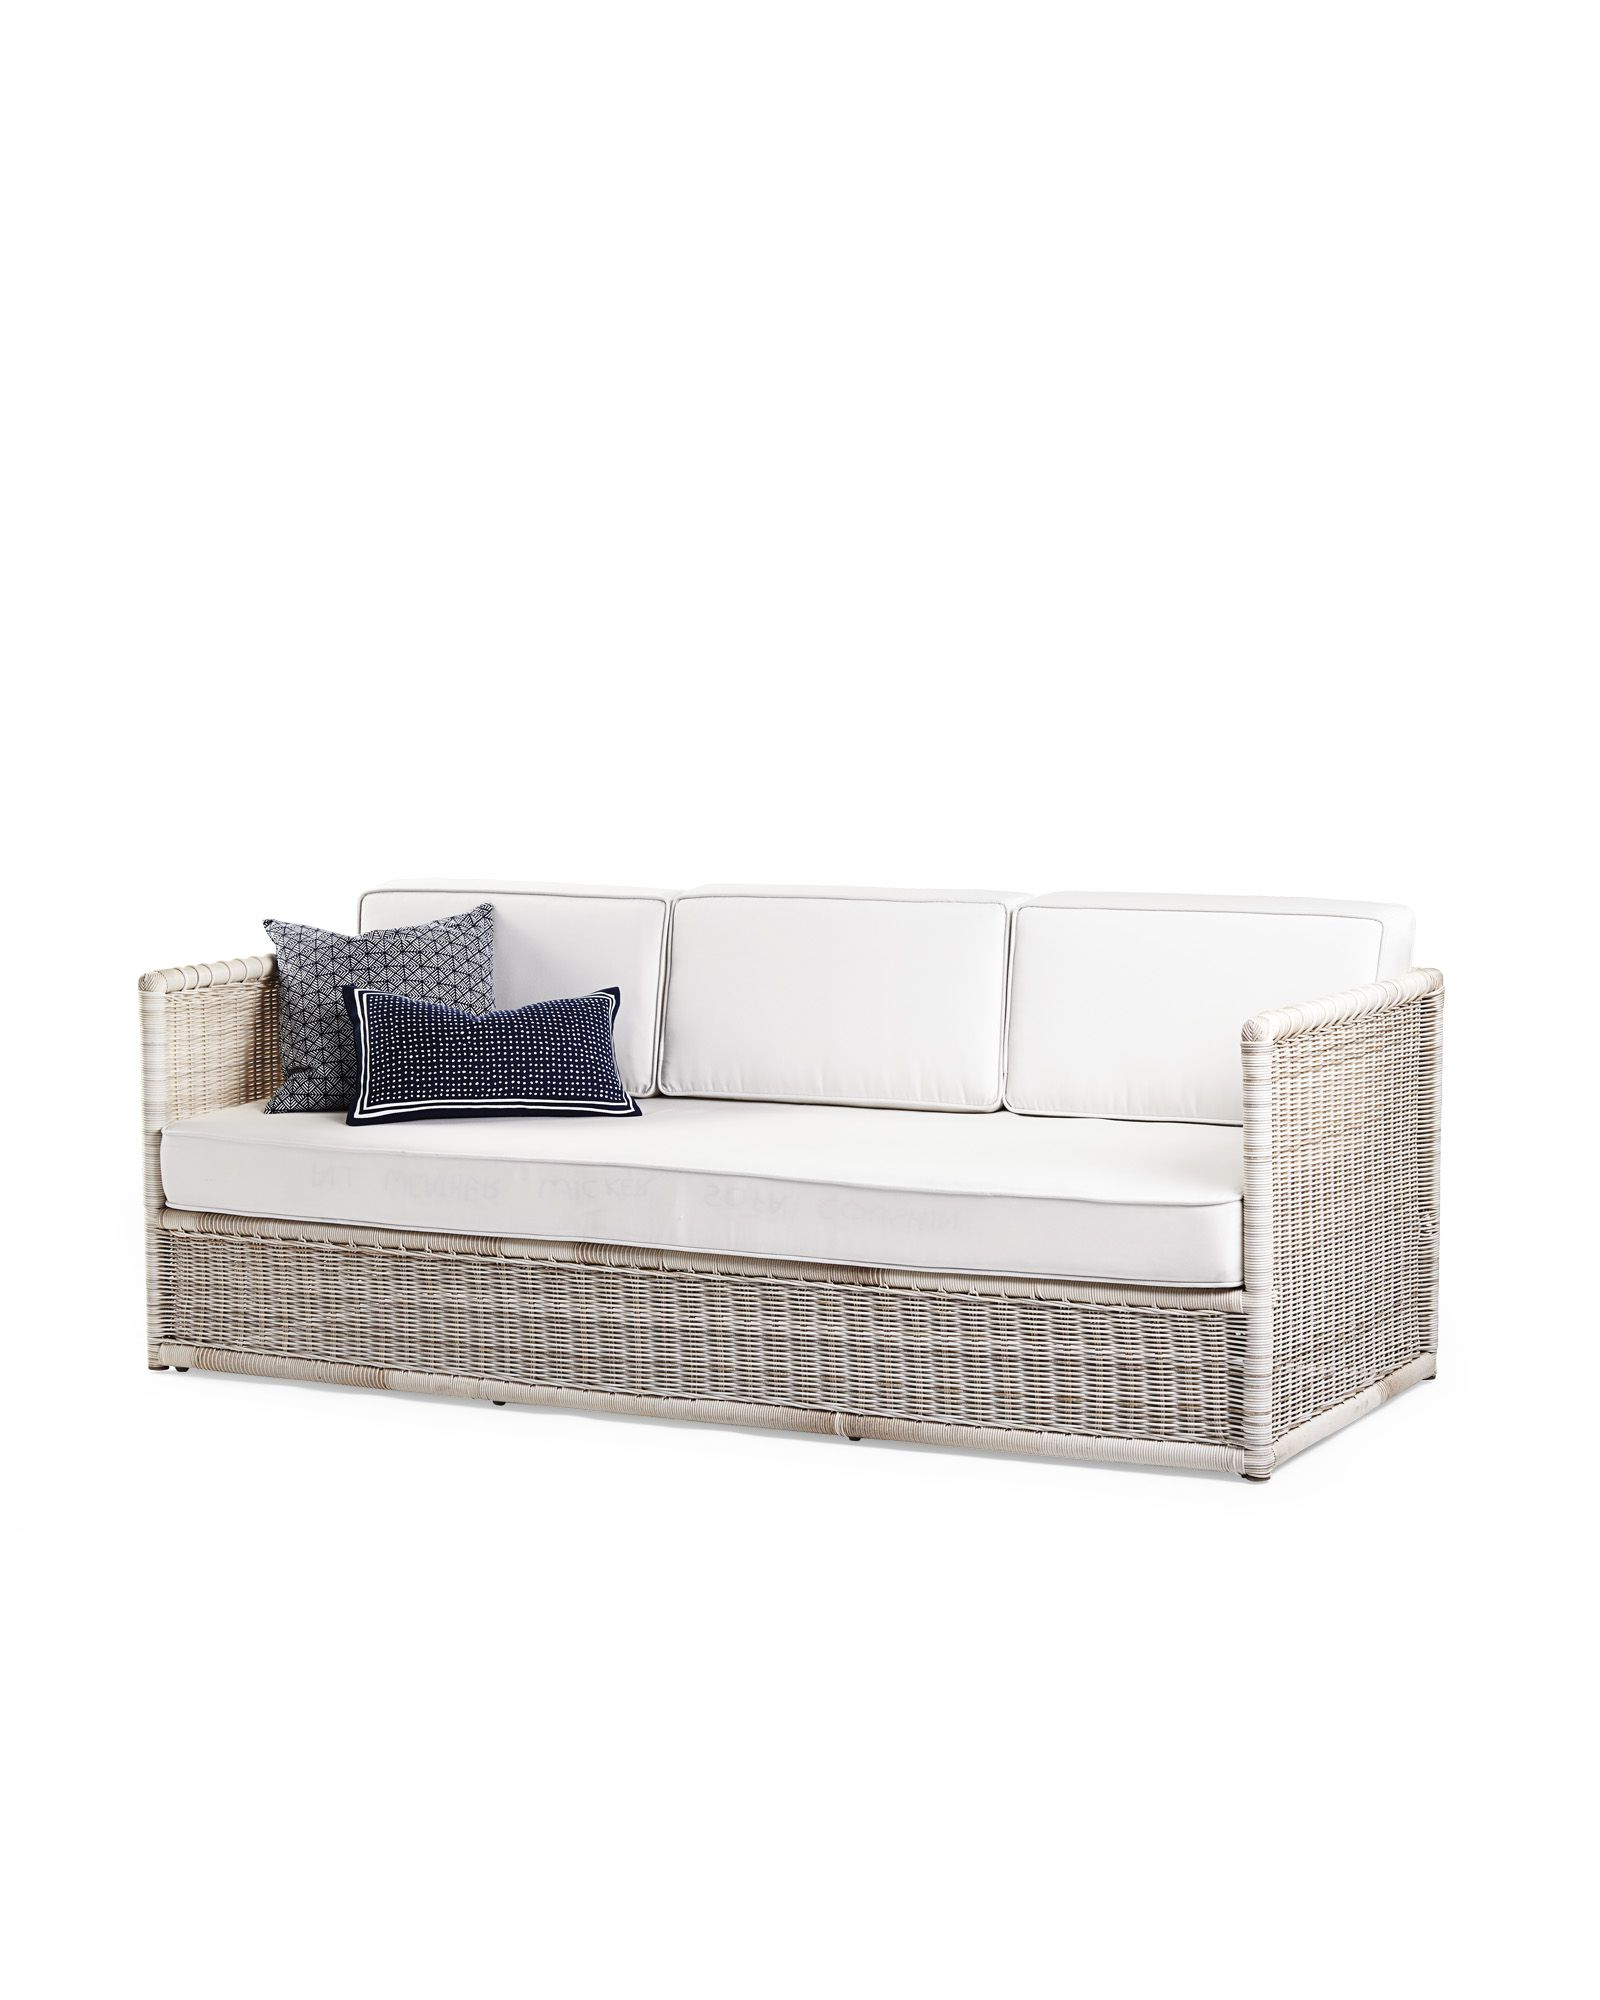 Tsr Pertaining To Outdoor Living Pacifica Piece Lounge Sets (View 17 of 25)